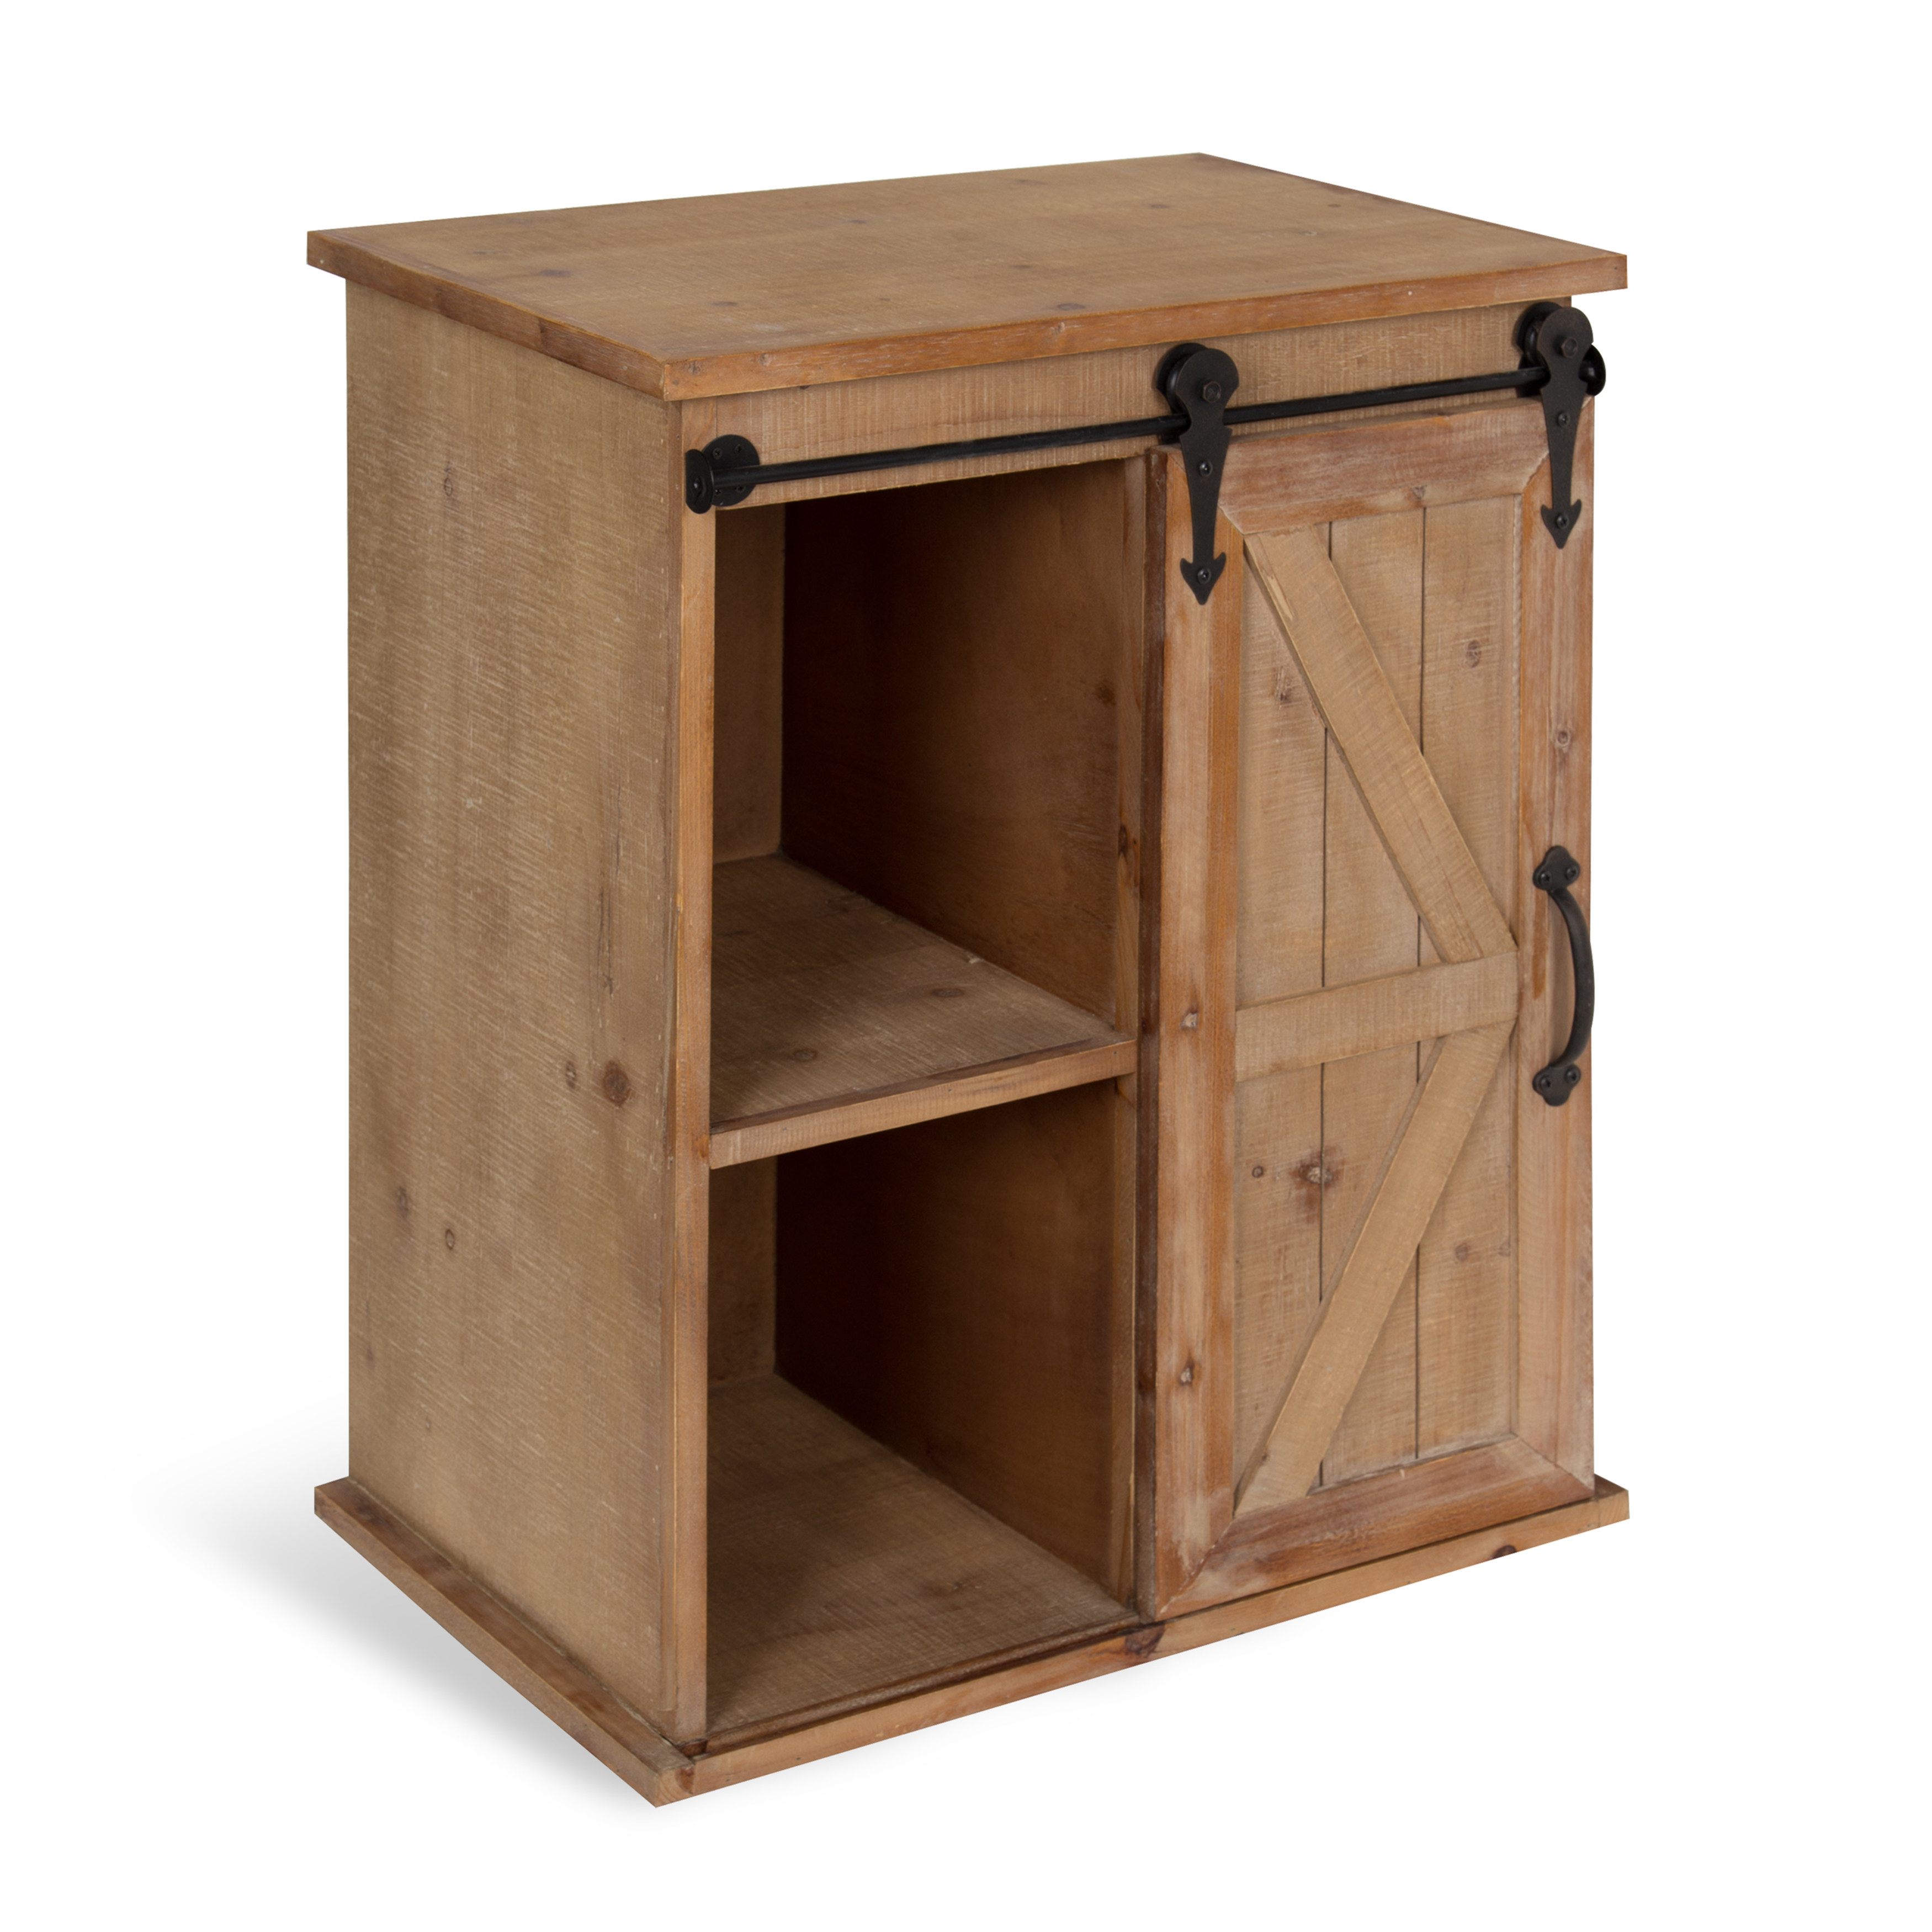 kate and laurel cates wooden freestanding storage cabinet side accent table with barn door sliding rustic brown finish chairs stand mirror nautical dining room chandelier sears